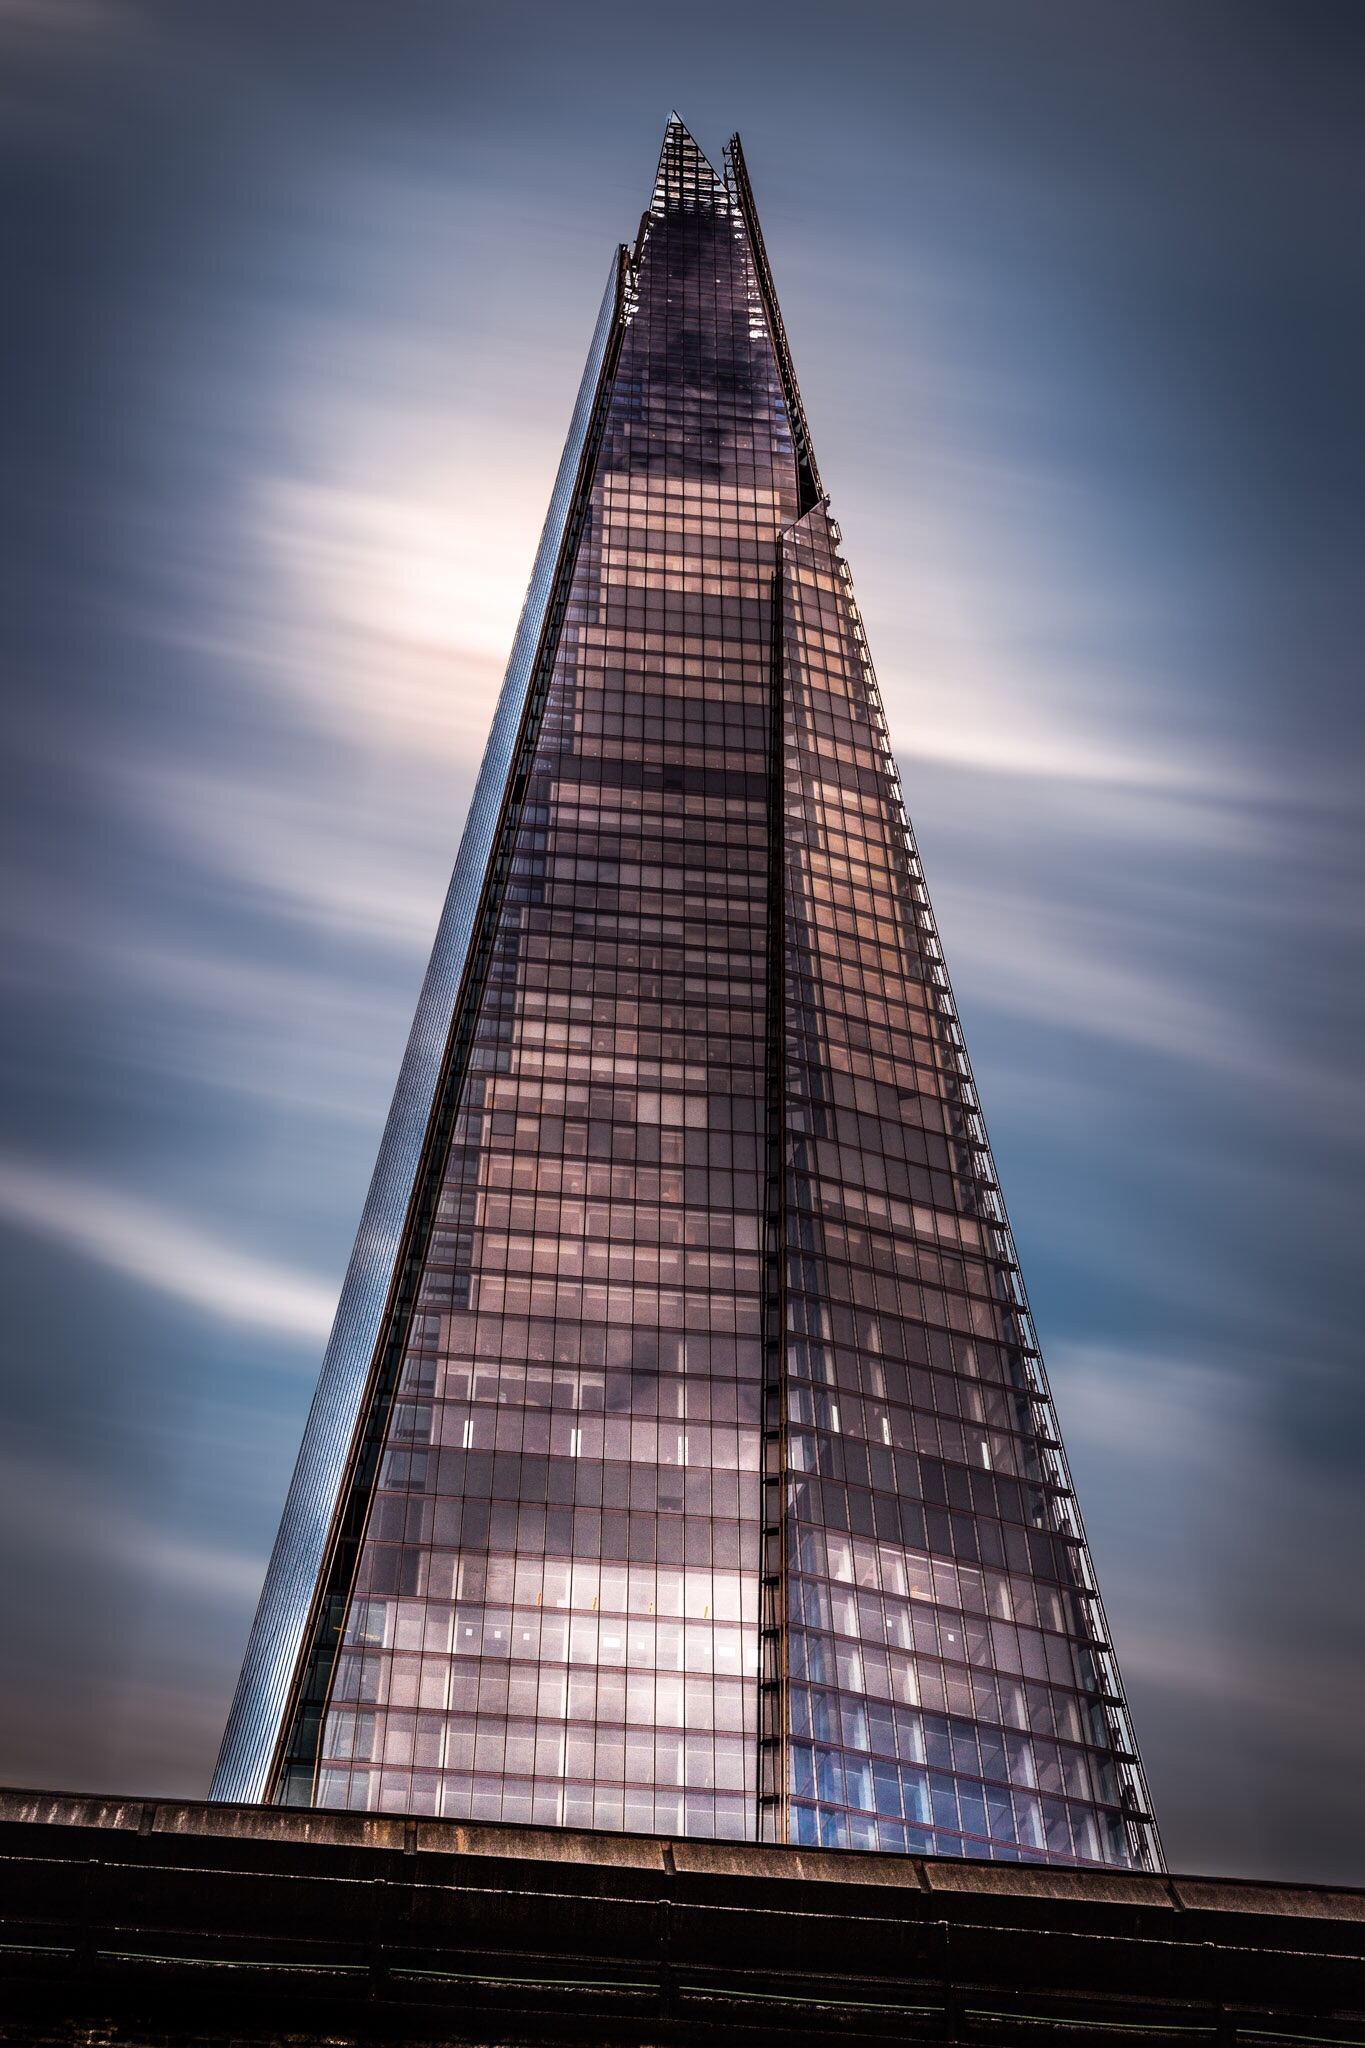 The Shard, London - architecture photography by Rick McEvoy